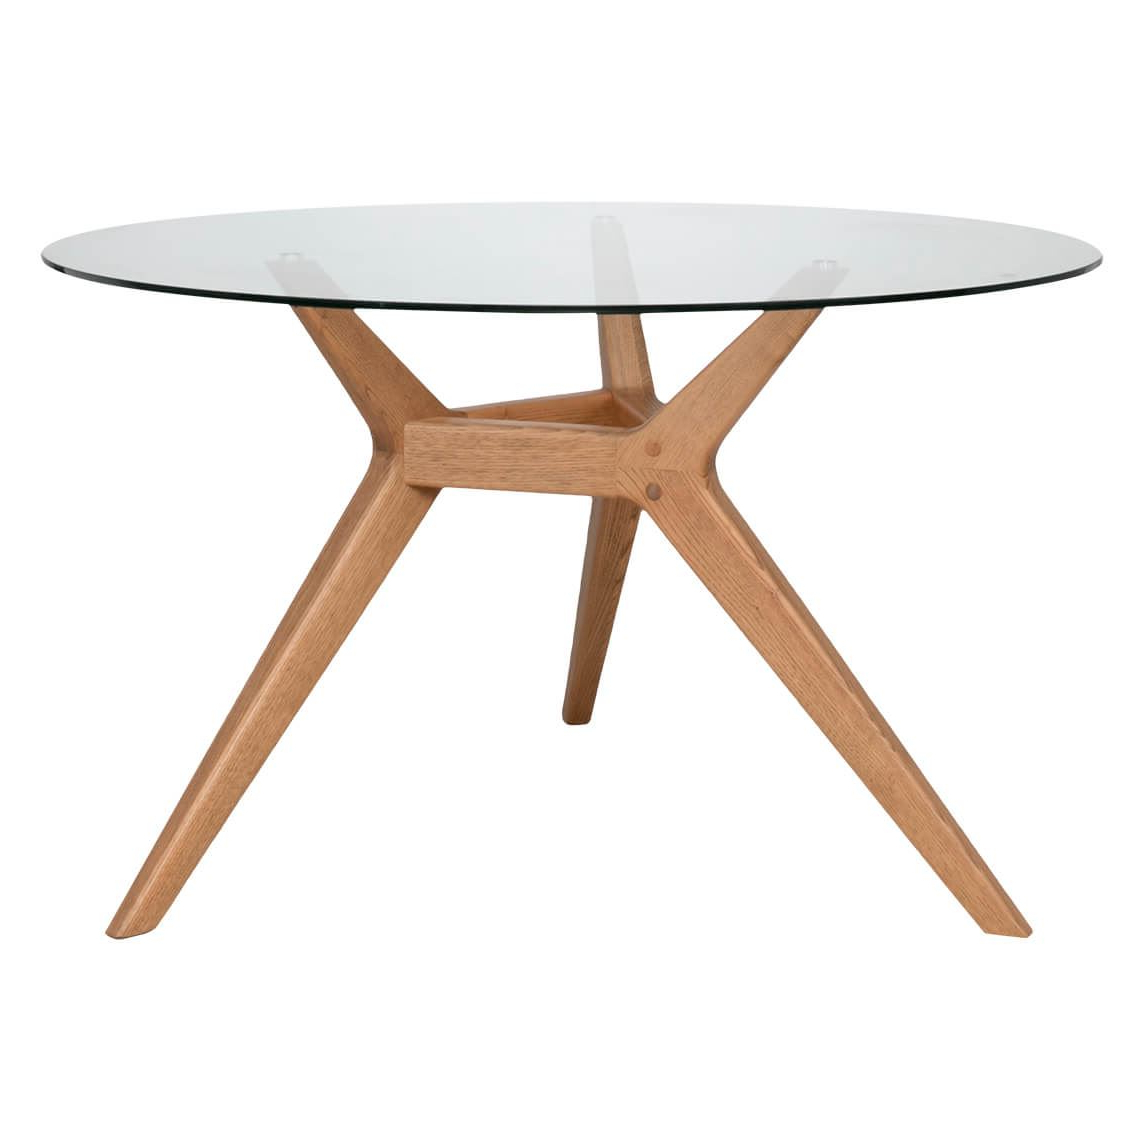 Preferred Round Glass Top Dining Tables Inside Arco 130cm Diameter Round Dining Table, Natural & Glass (View 26 of 30)